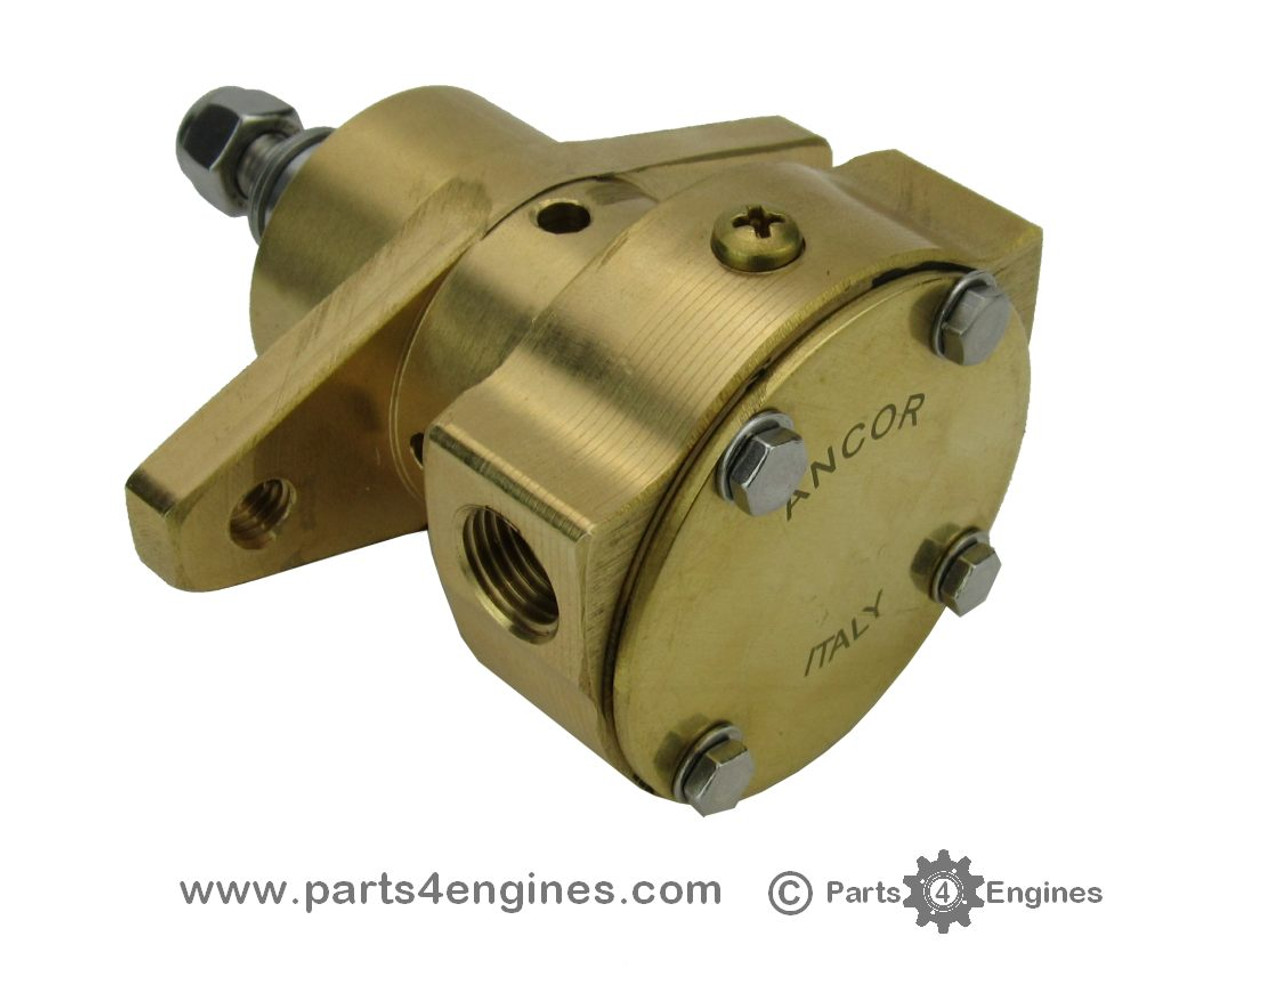 Yanmar 2GM20 series raw water pump - parts4engines.com